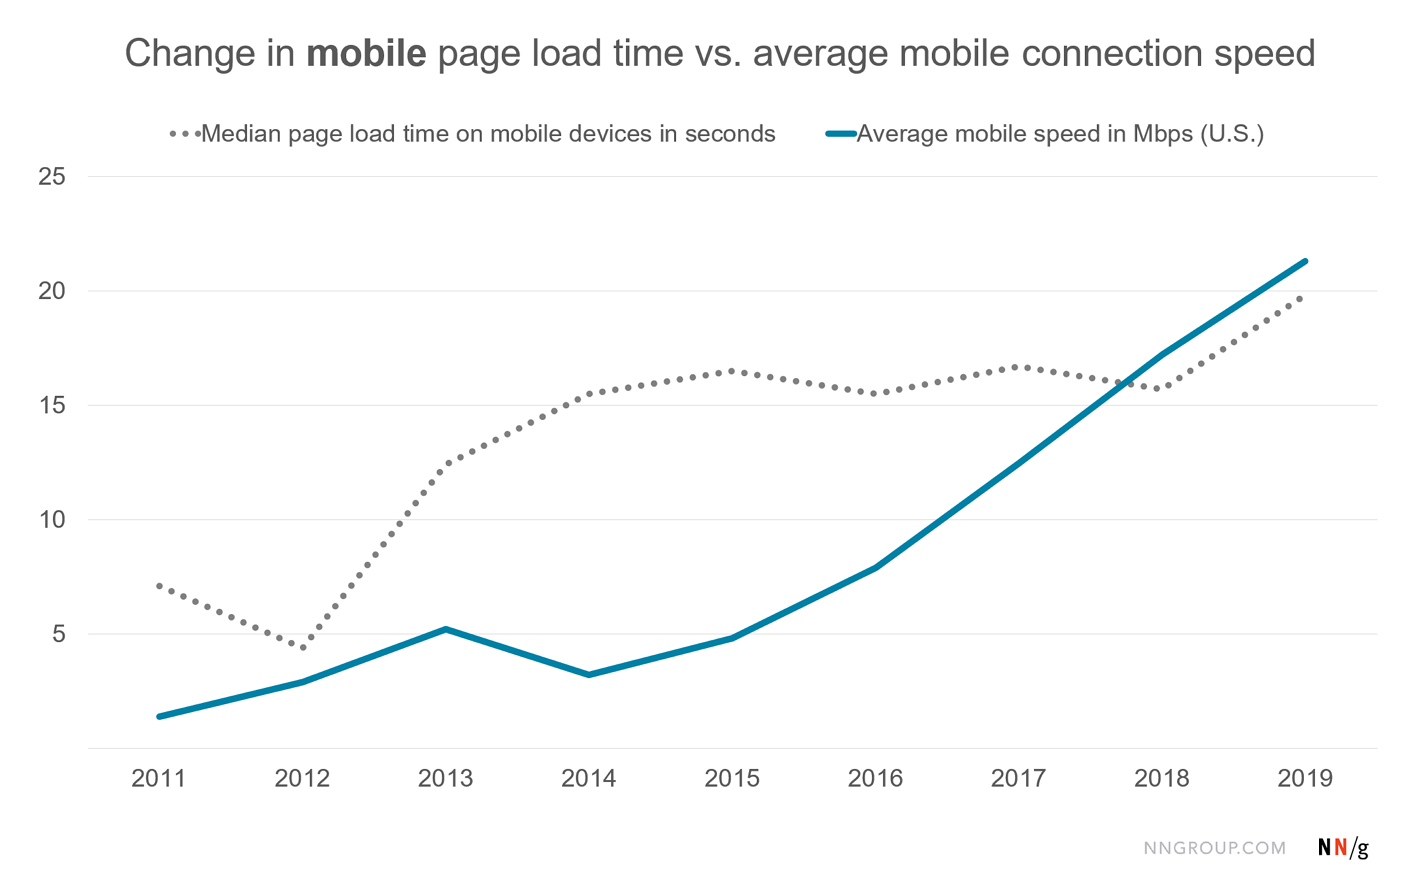 Chart showing the change from 2011 to 2019 in the average page load time on mobile devices vs. the average mobile device internet connection speed